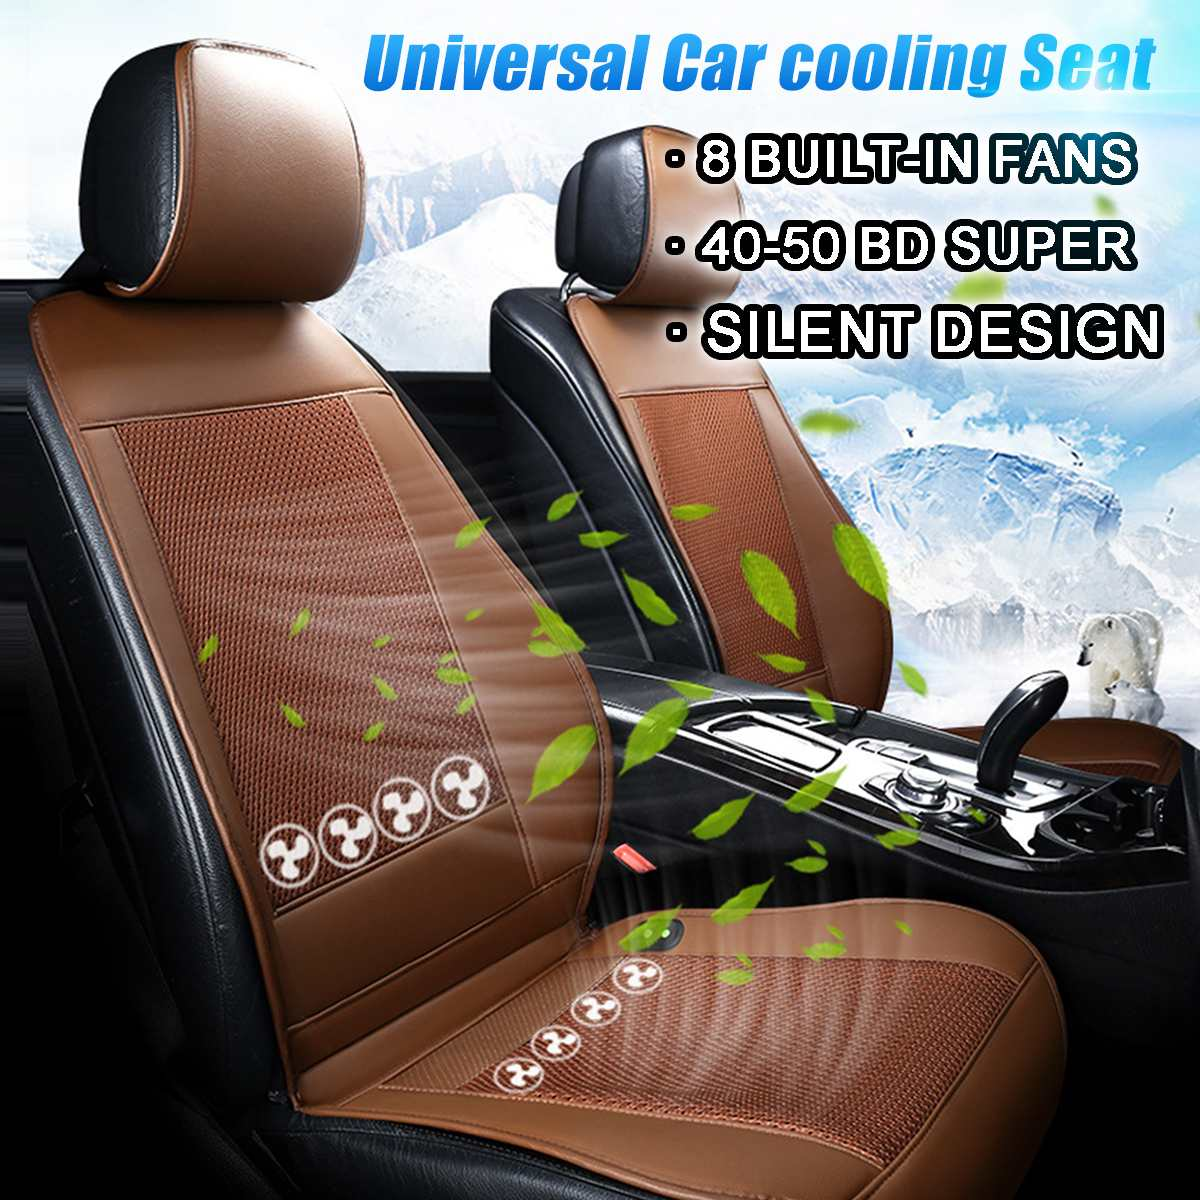 8/4 Built-in Fan 3D Cooling Fan Cool Cushion Fan Blowing Cool 12V 3 Speed Ventilation Cushion Summer Air Cooler Car Seat Cover